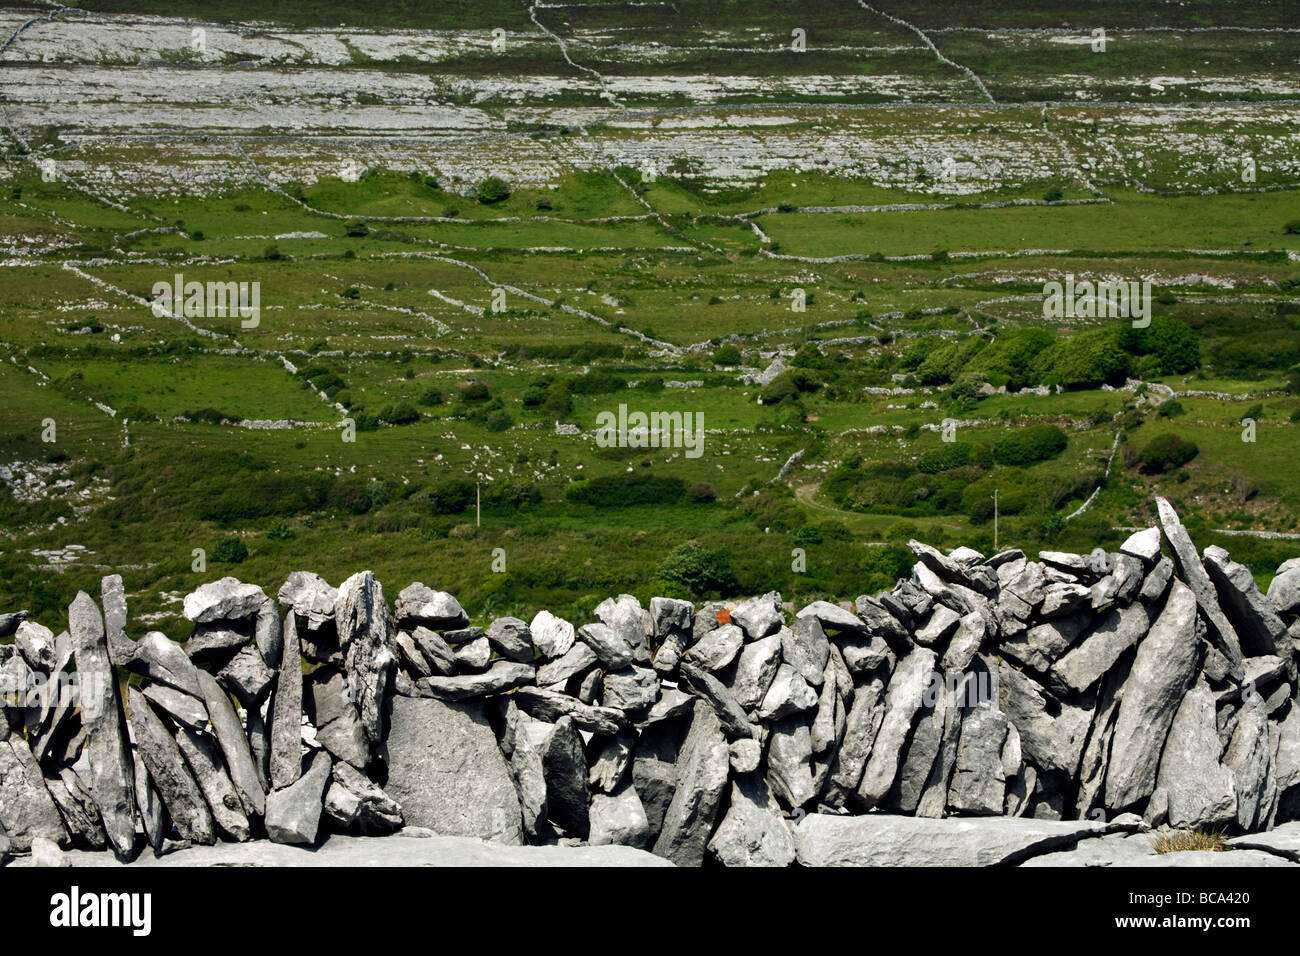 A view of a drystone wall and wall patterns in the Burren, Eire - Stock Image